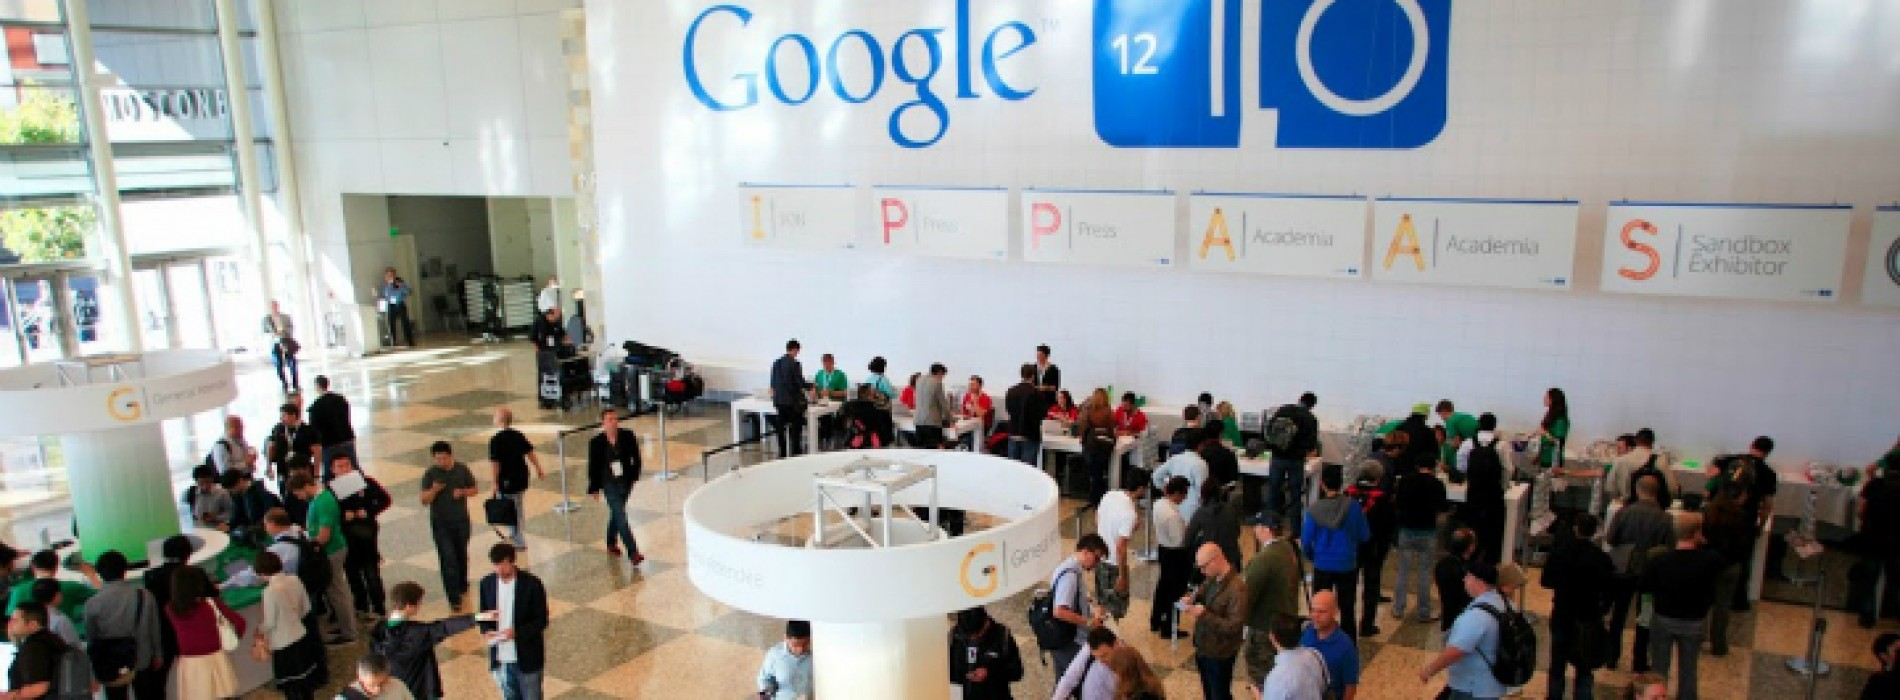 What is Google cooking up for Google I/O 13?